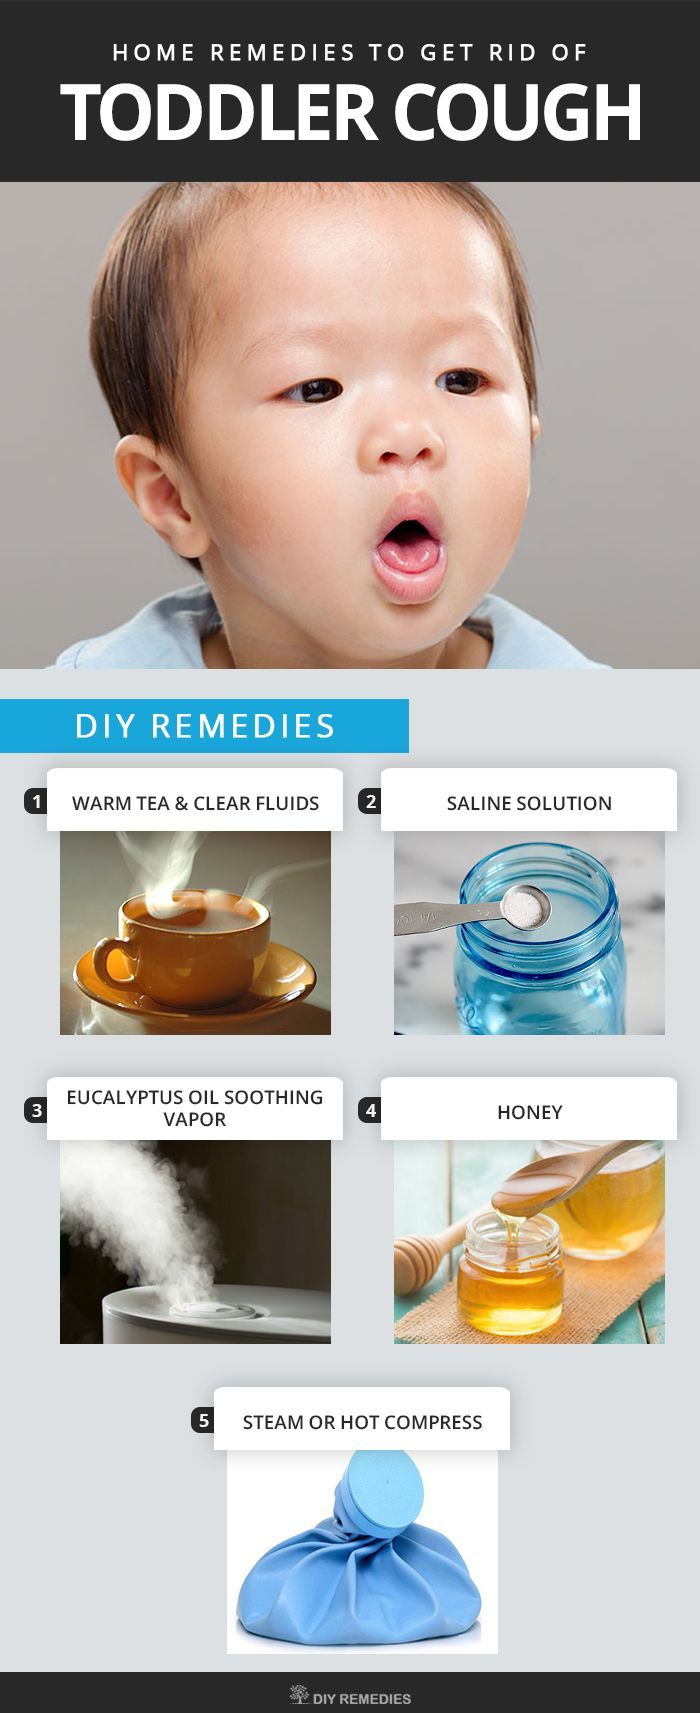 f3c296c0d6f1aa5c4442dca2a294f292 - How To Get Rid Of A Child S Cough Quickly